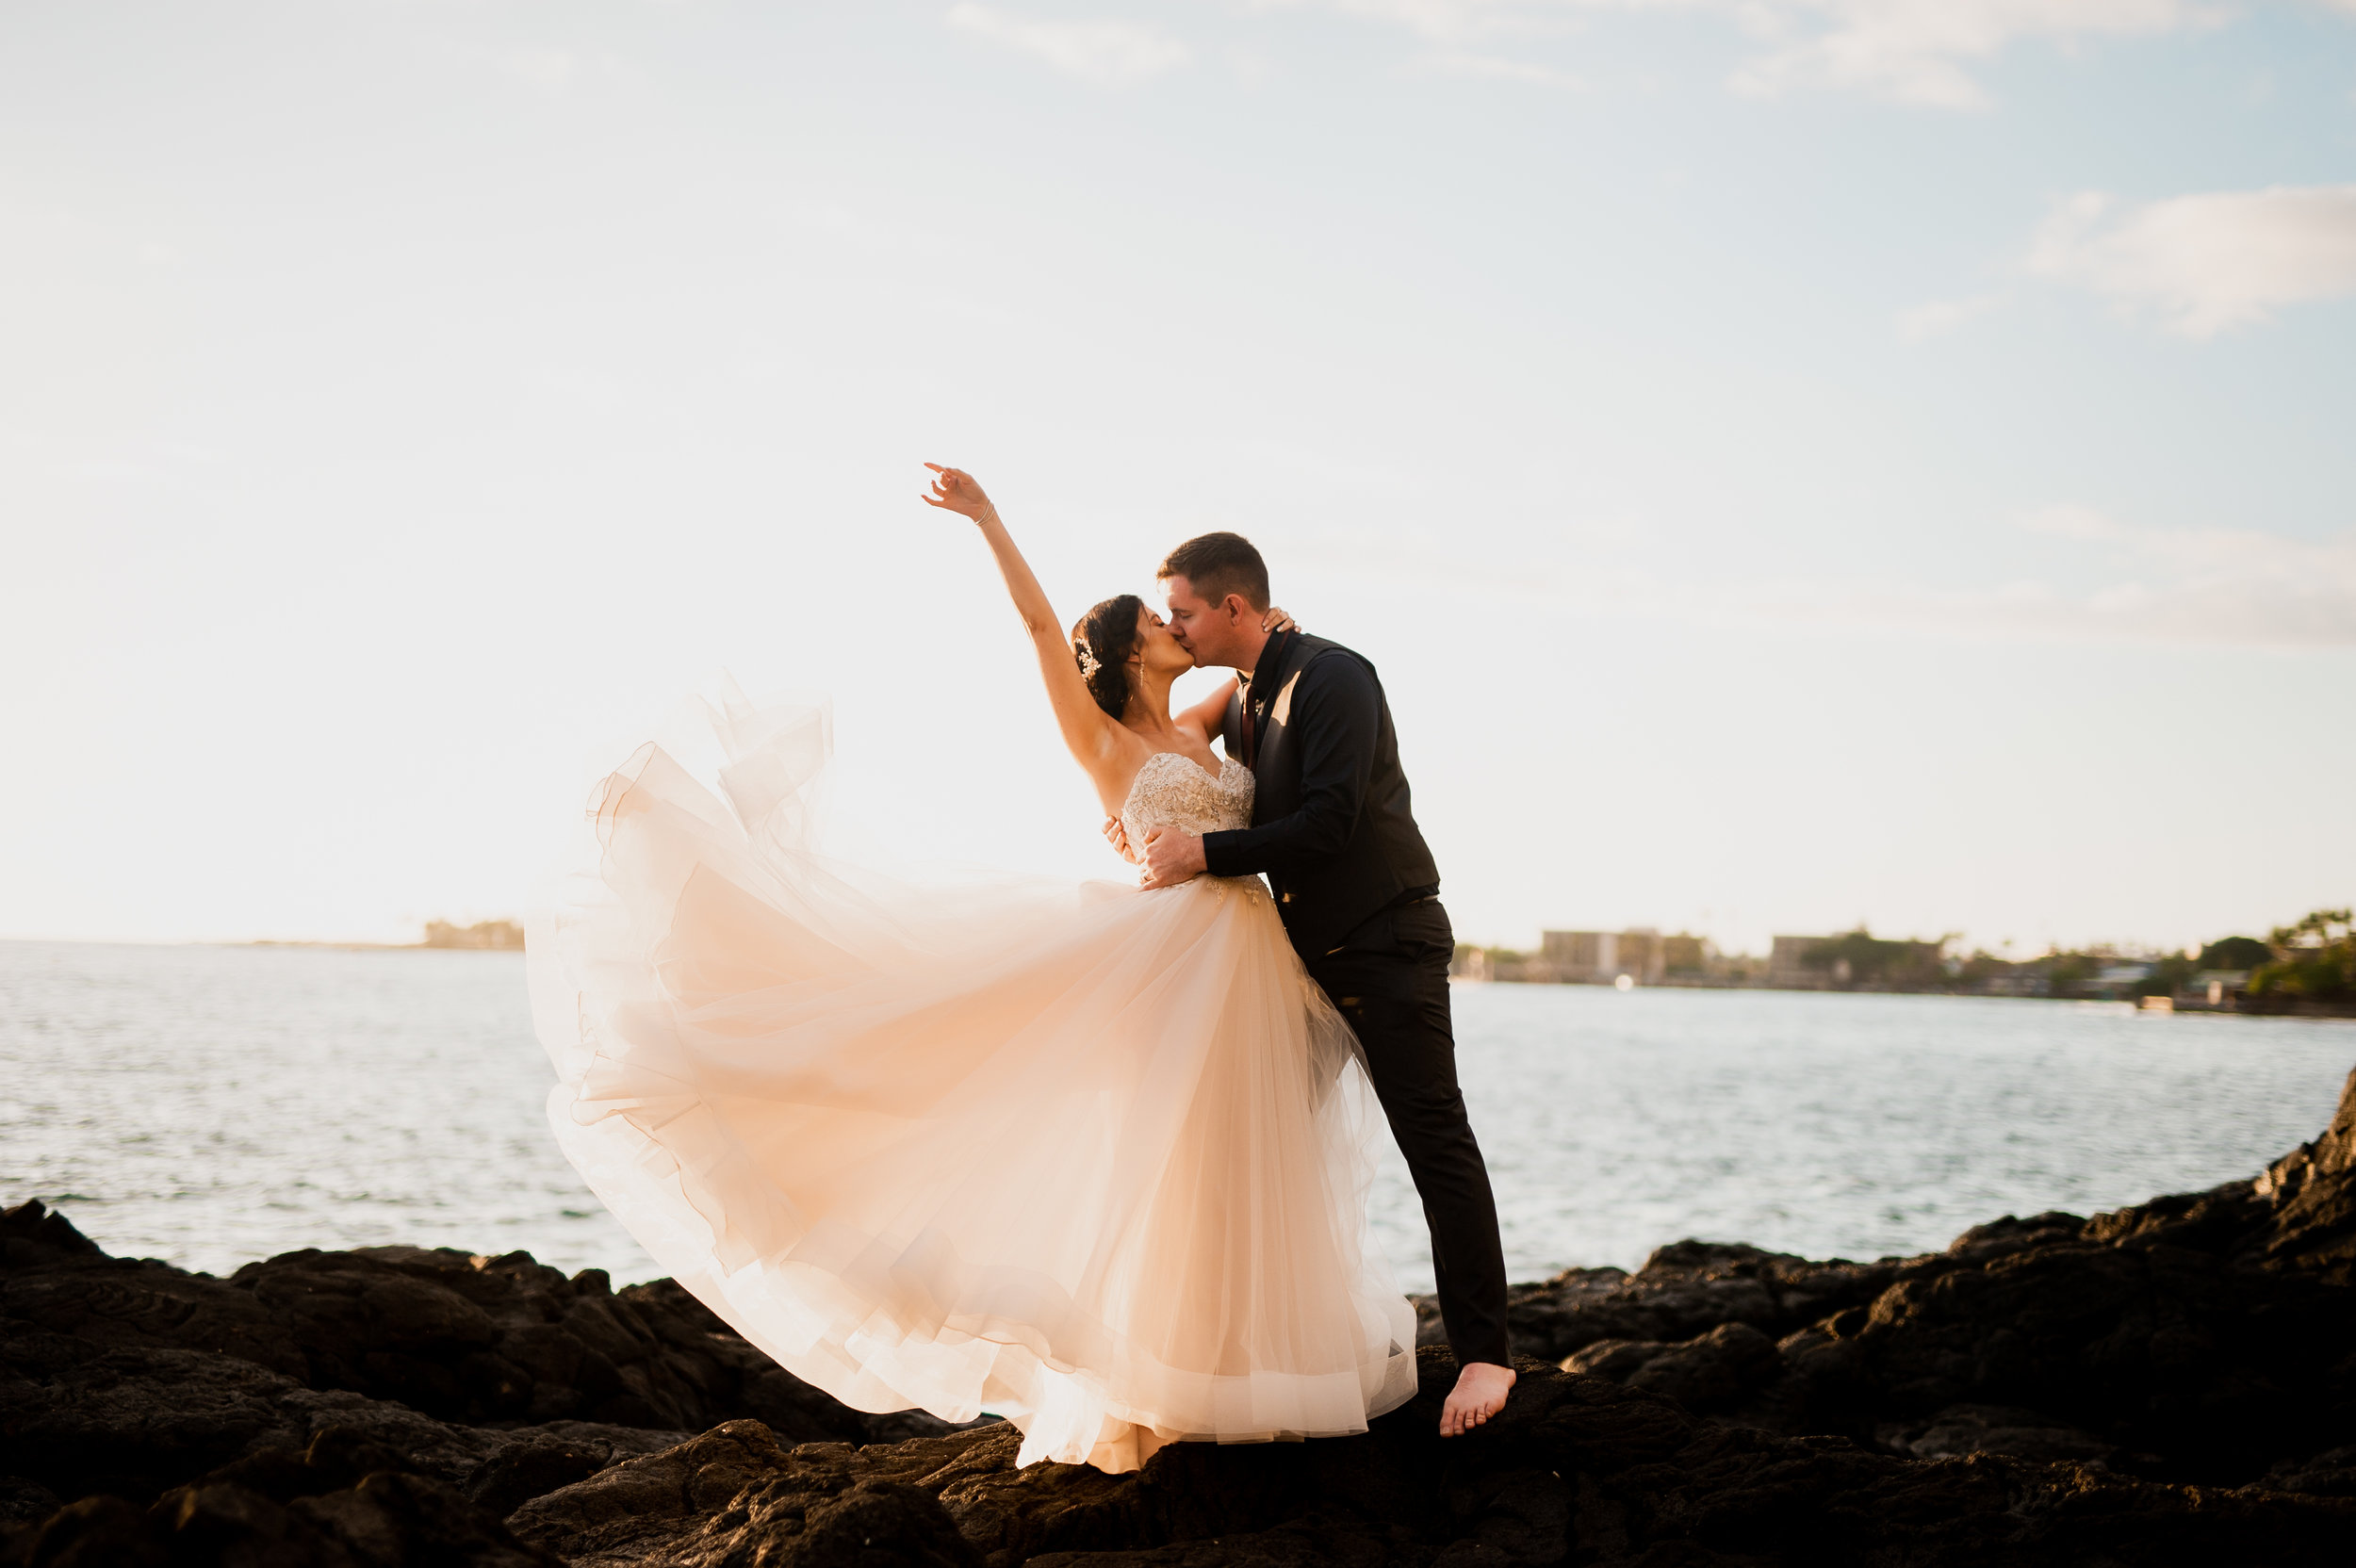 Bride and Groom Kissing on Lava Rocks